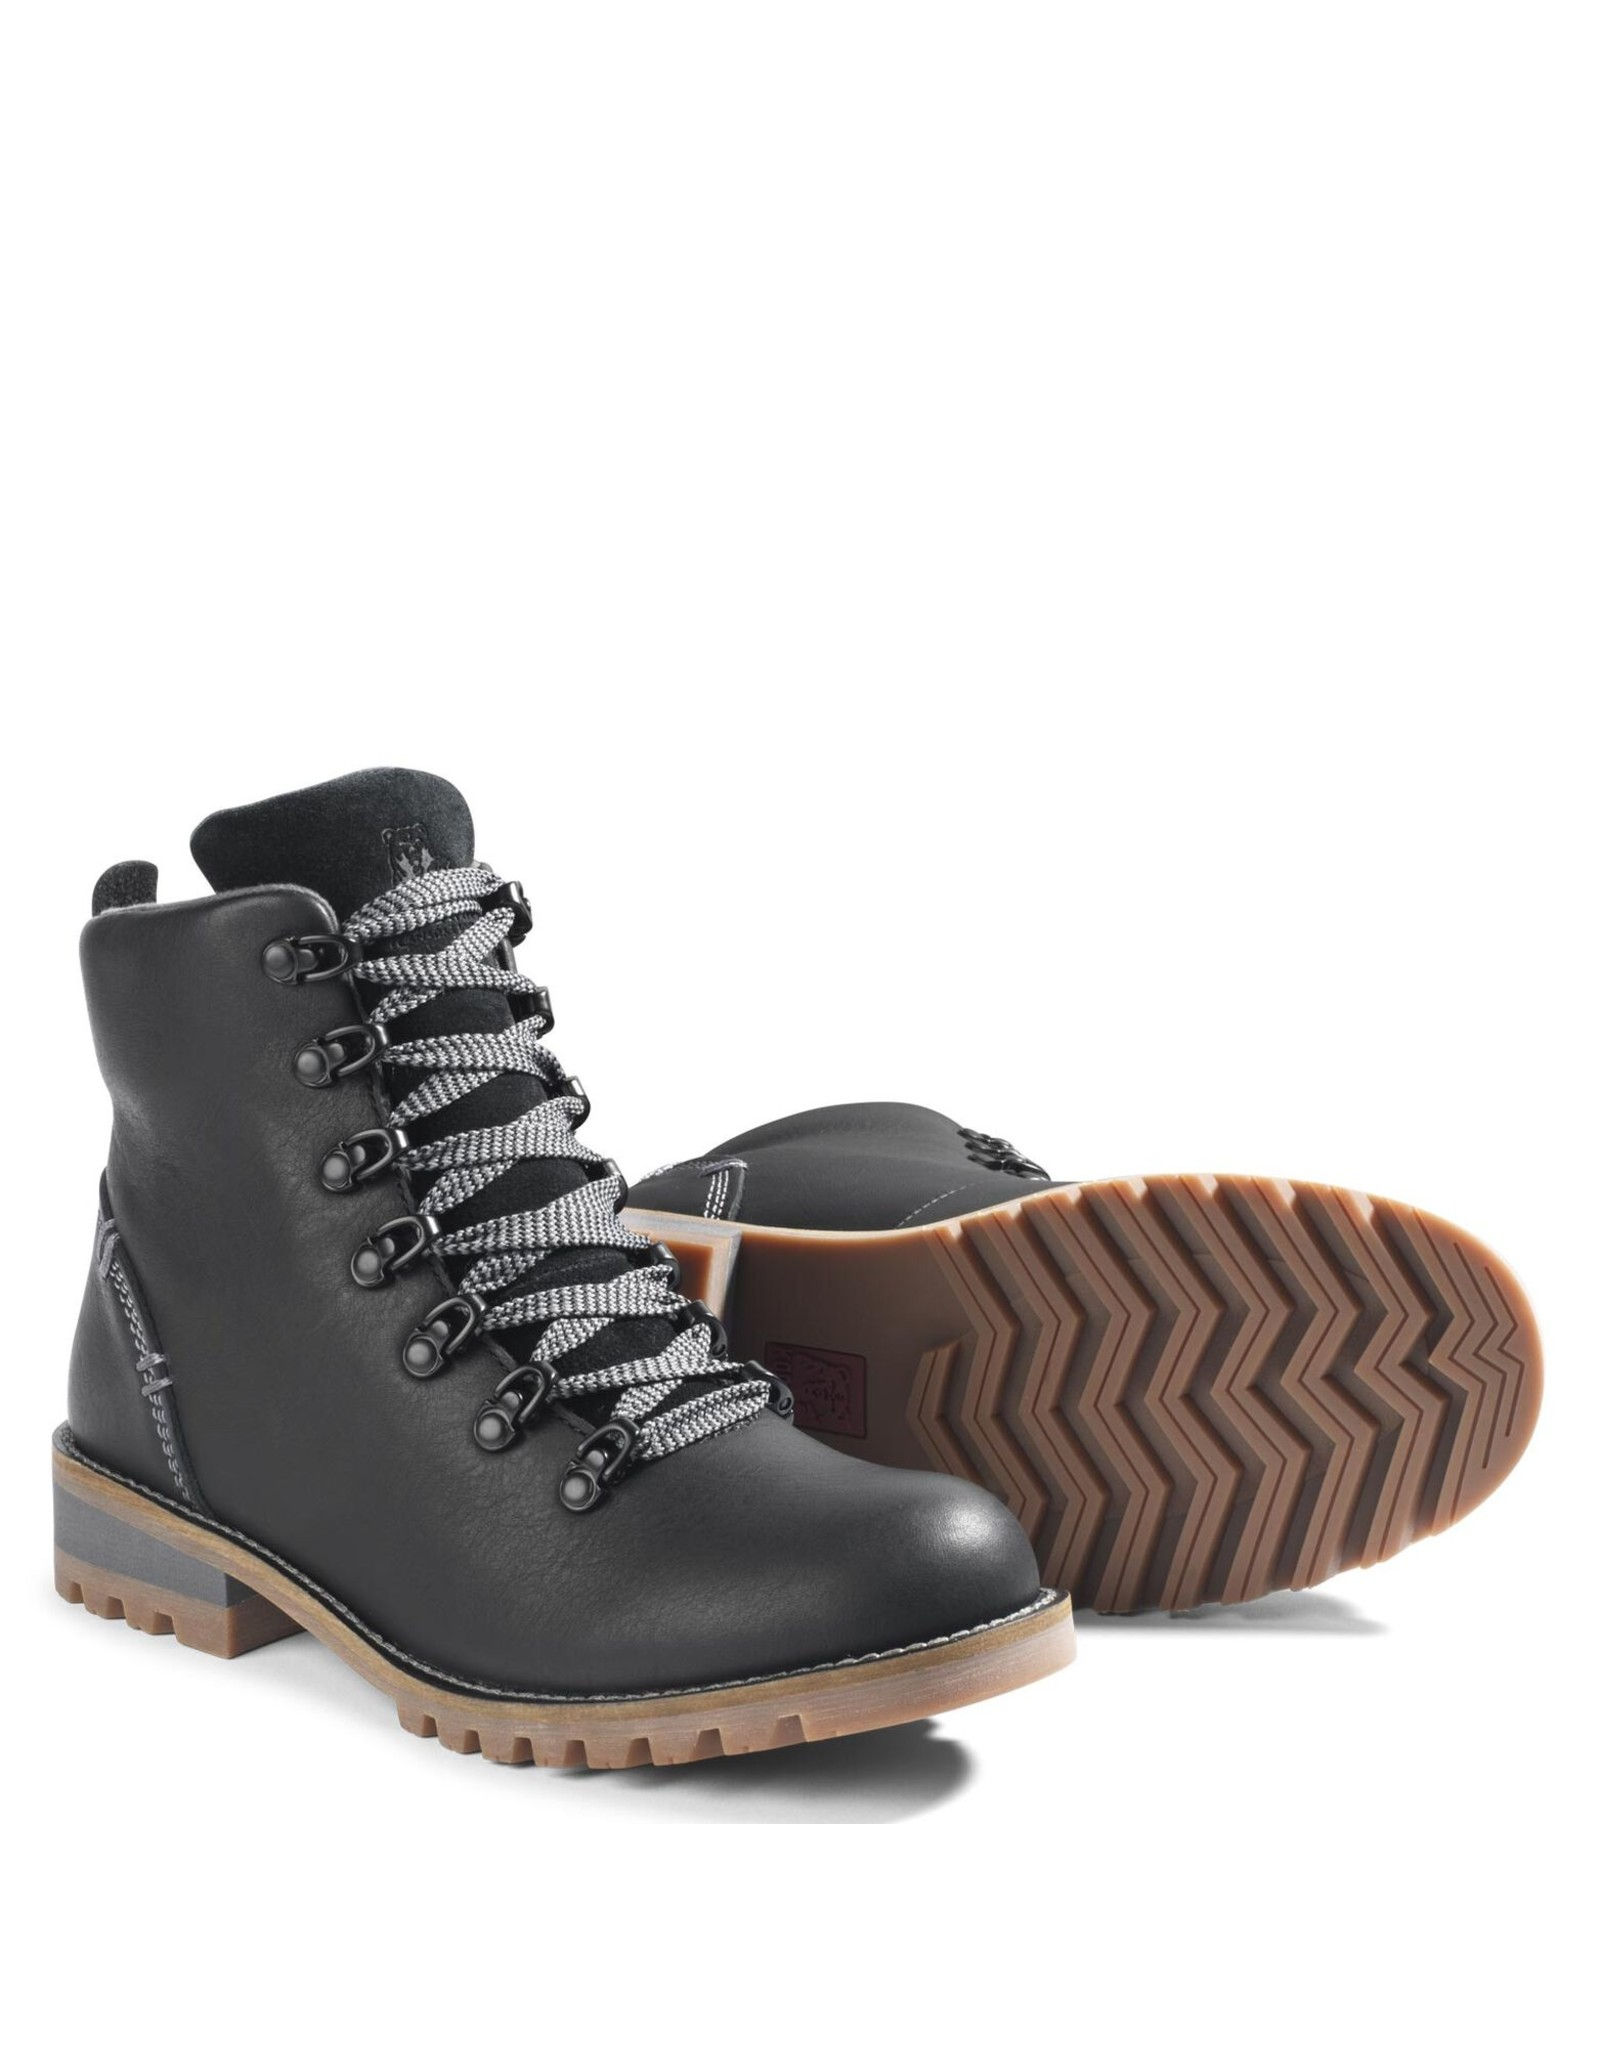 KODIAK FERNIE BOOT